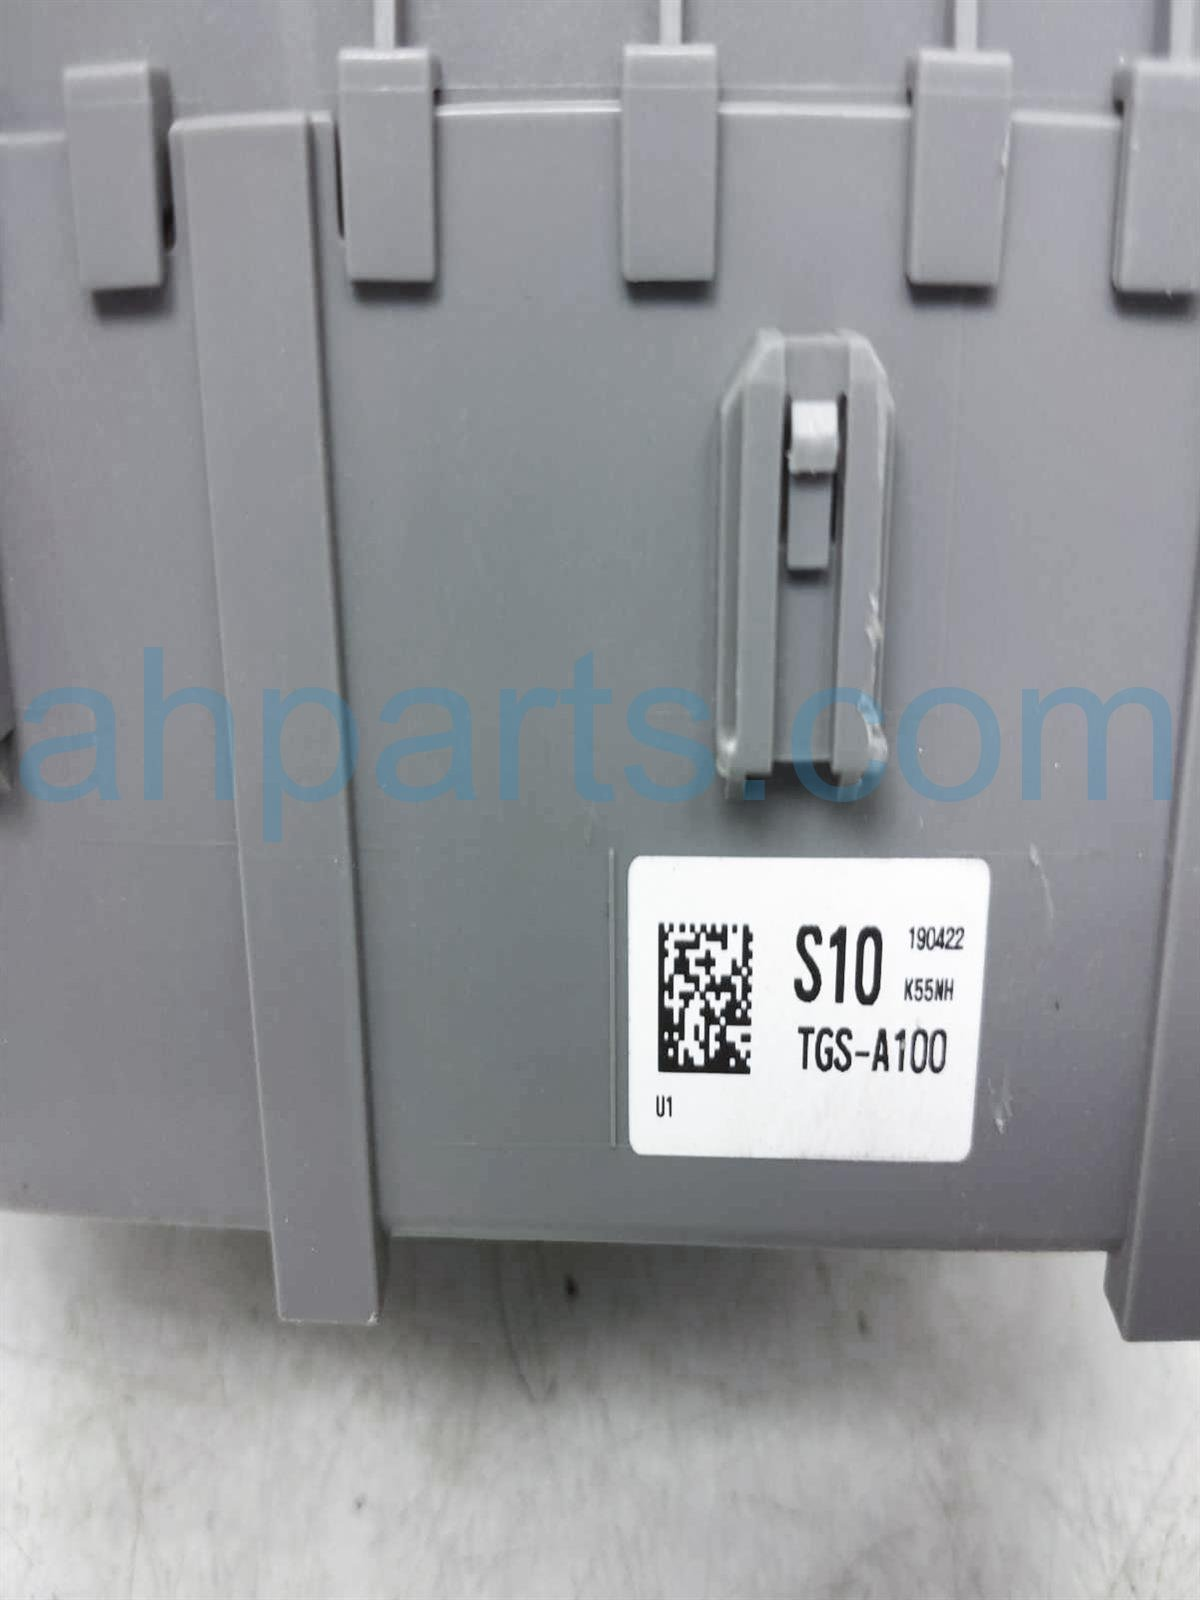 2019 Honda Passport Cabin Fuse Box 38200 TGS A11 Replacement